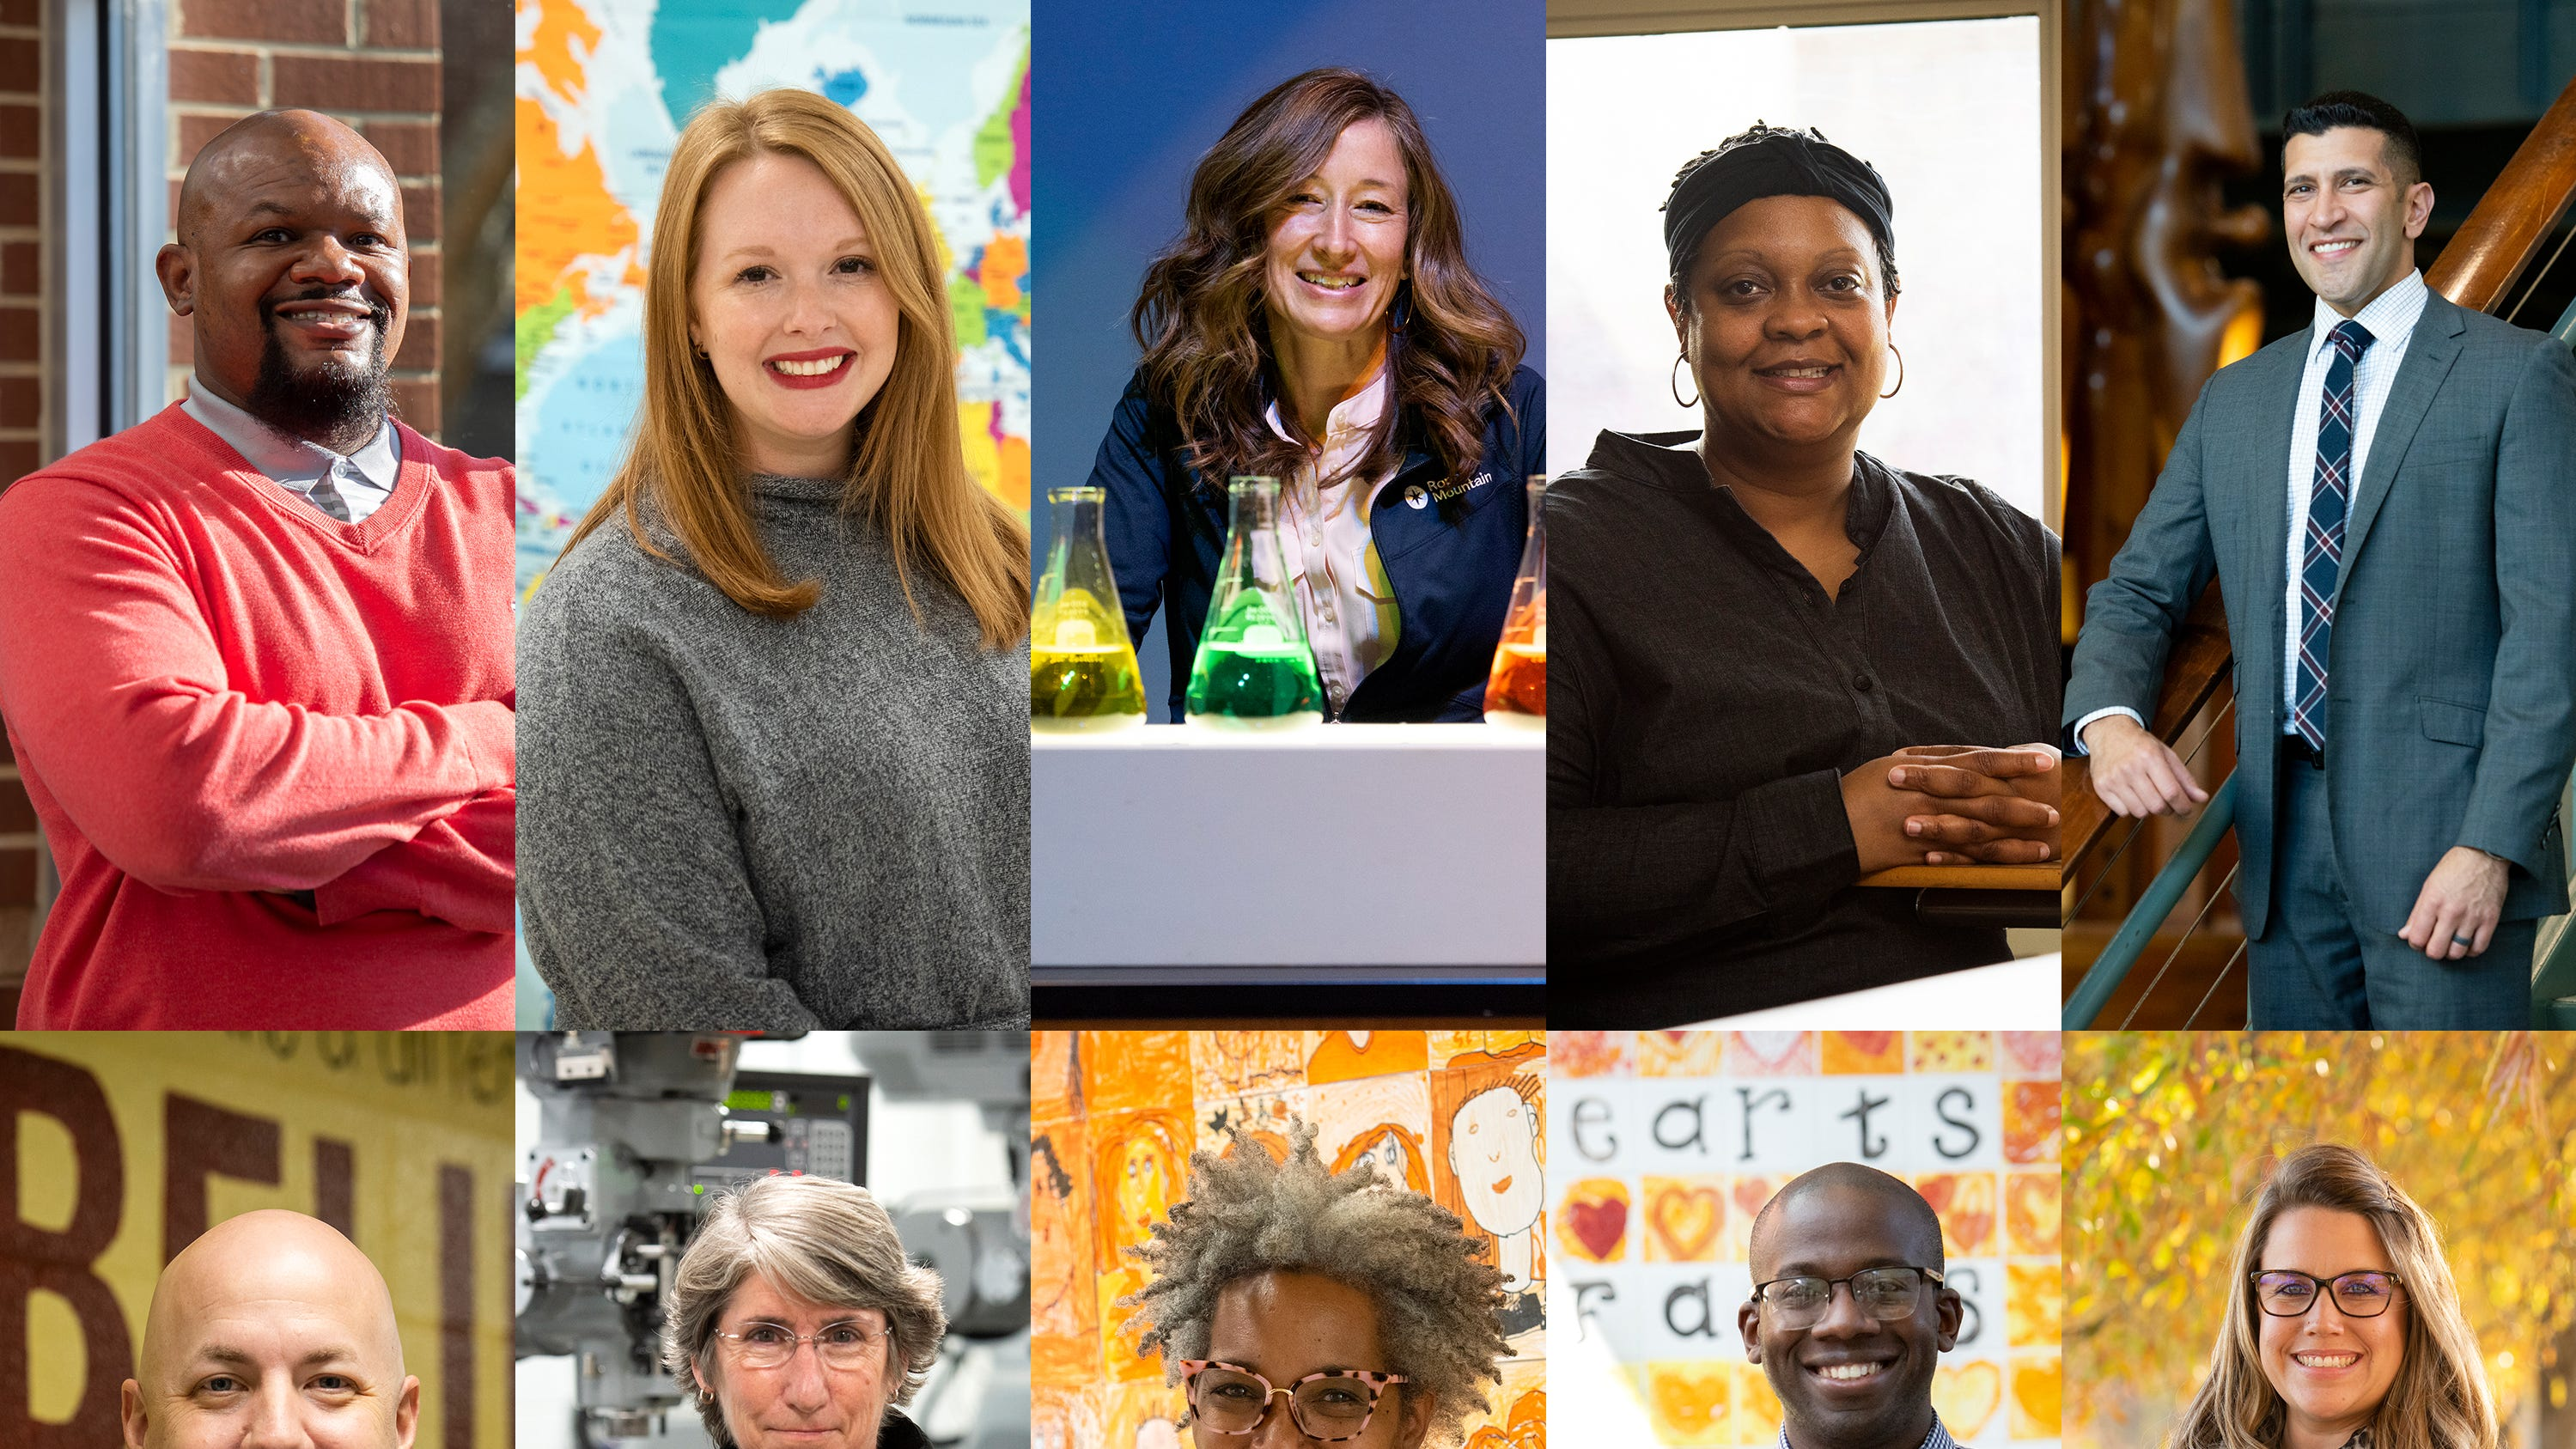 10 Educators Who Make A Difference